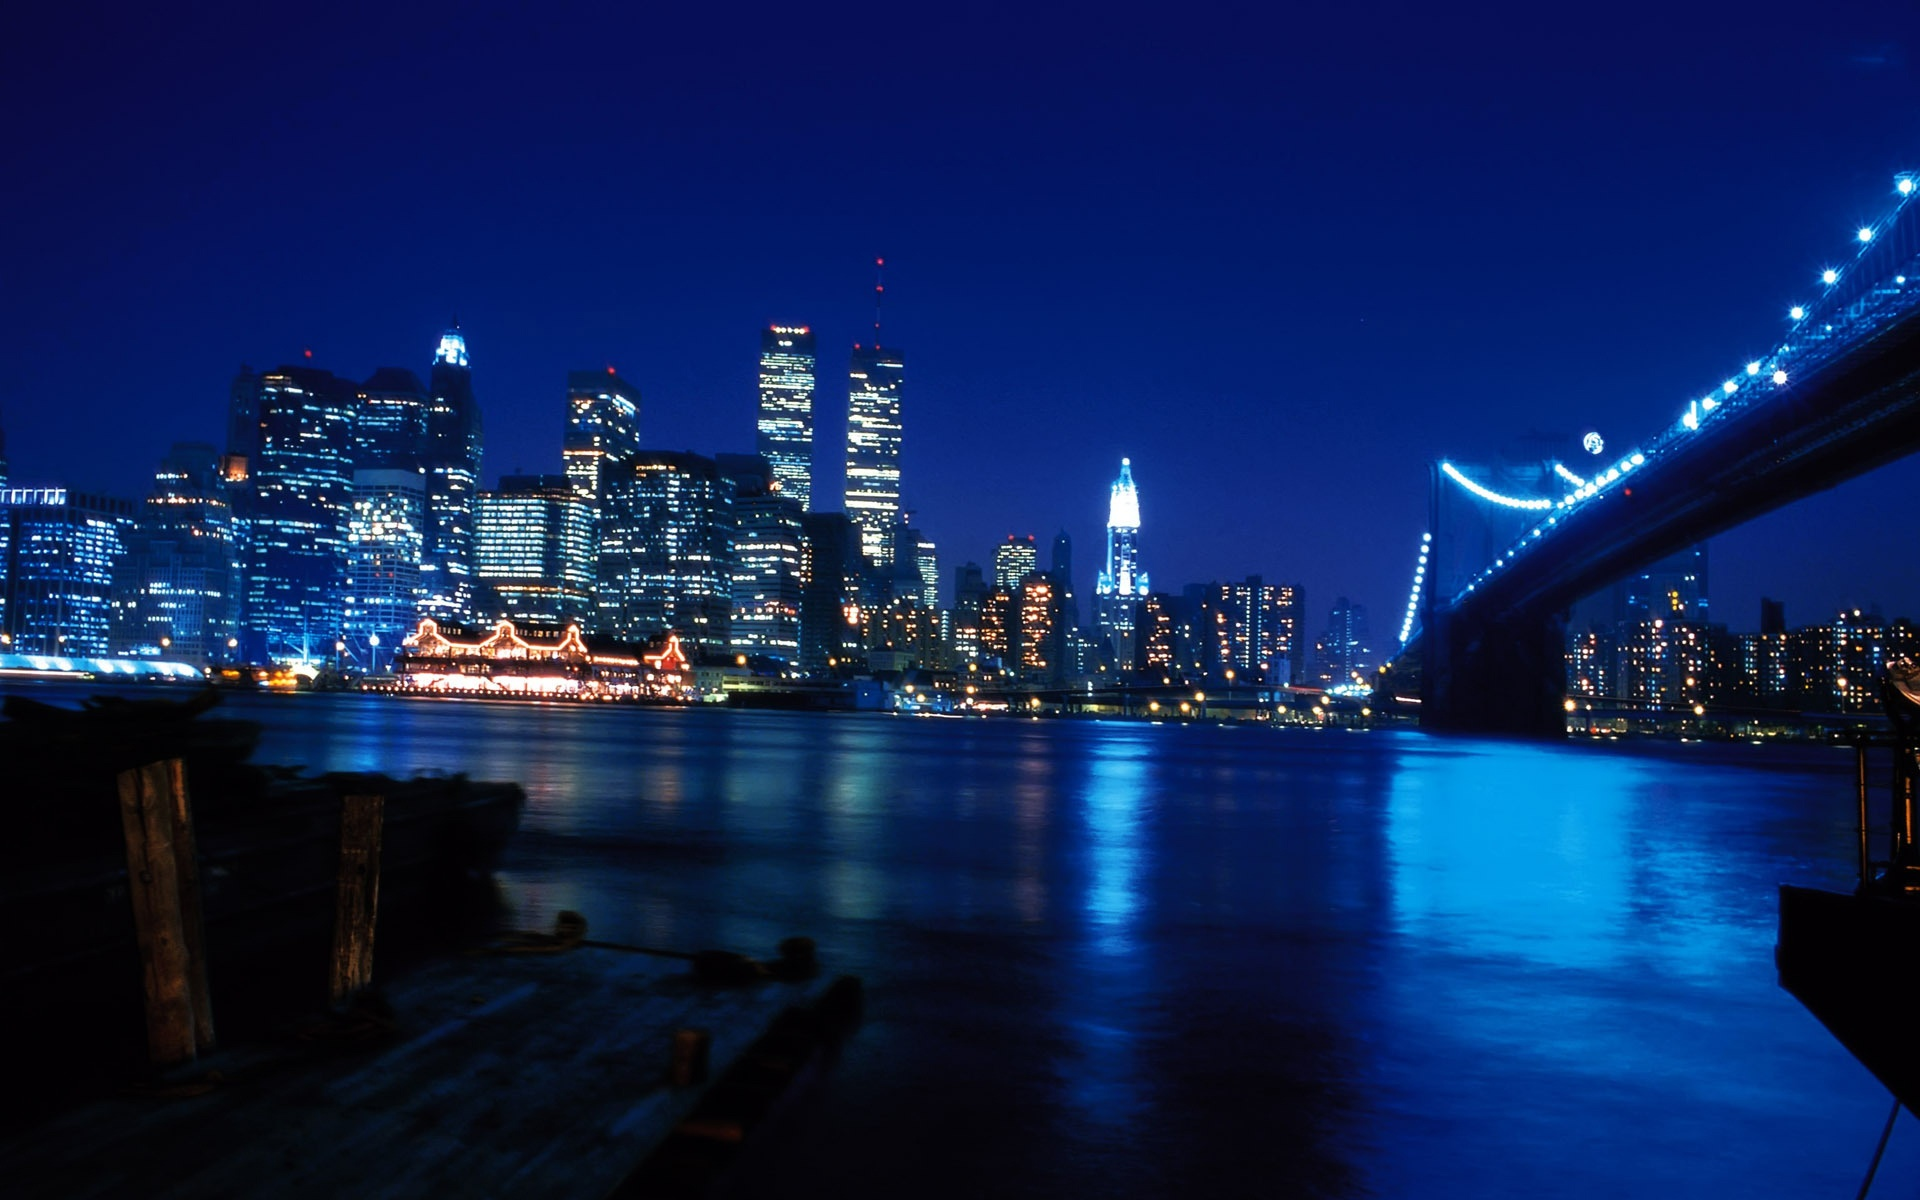 New york city at blue night 1920 x 1200 download close